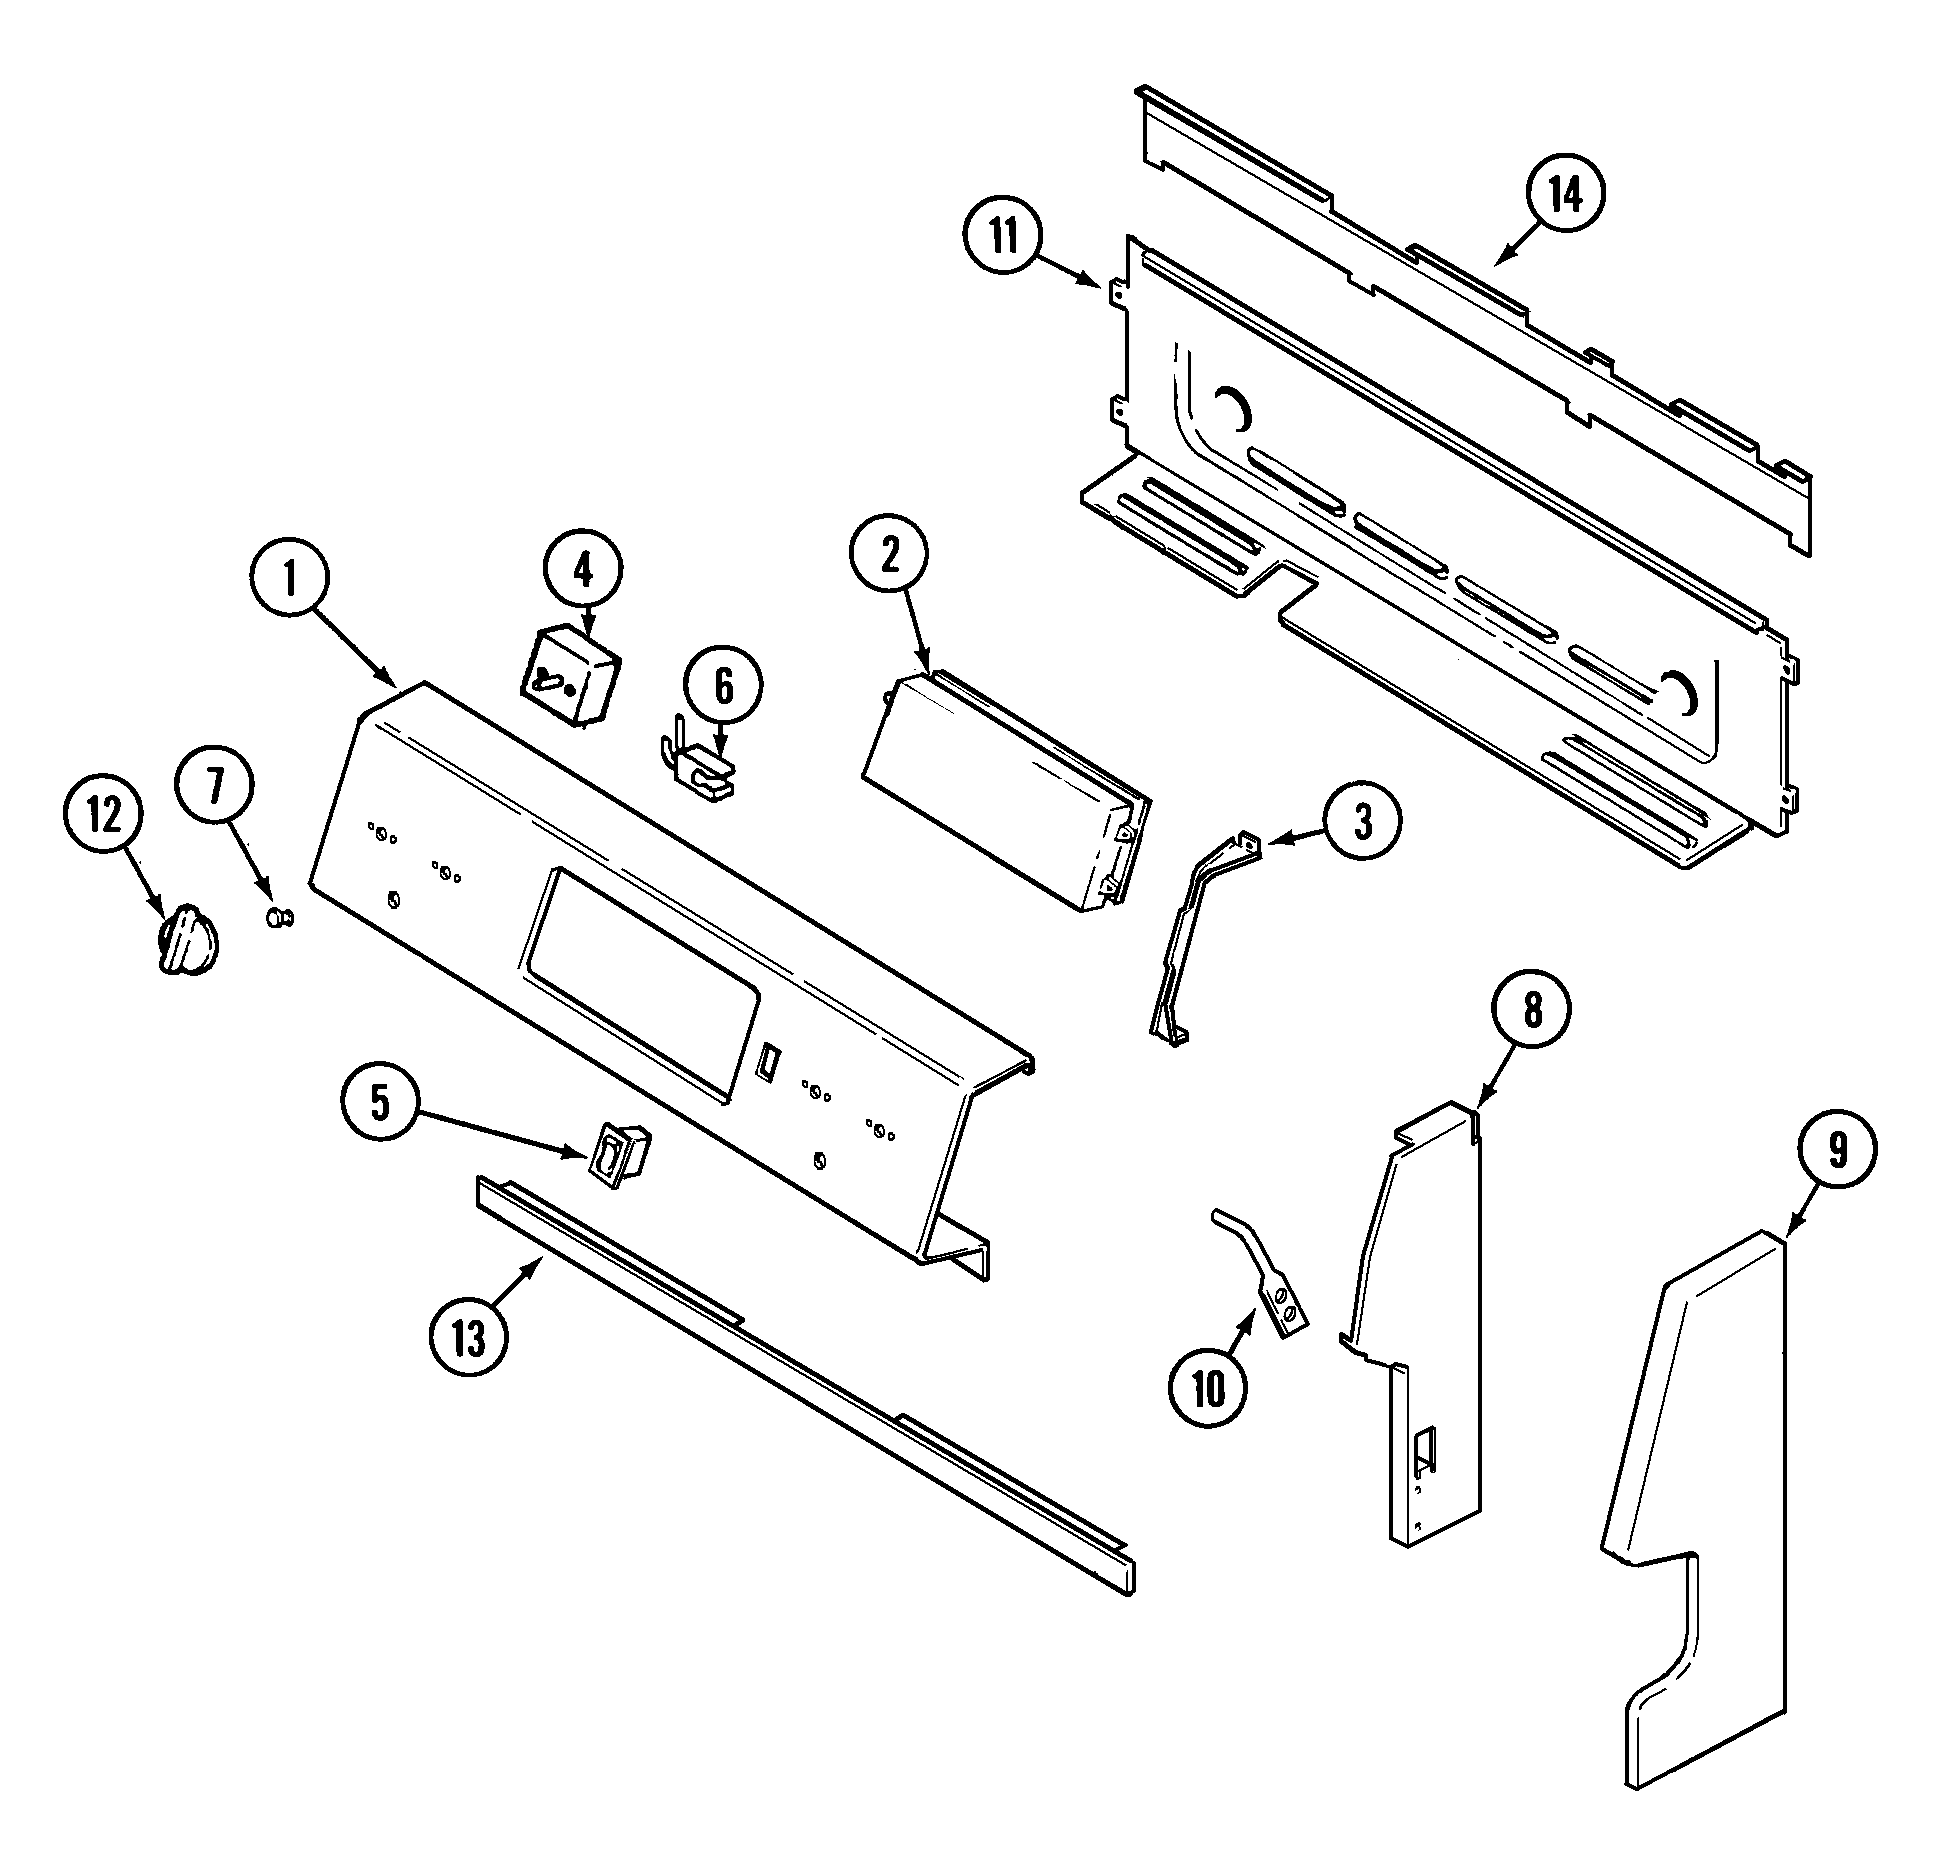 hight resolution of maytag mer5511baw control panel diagram